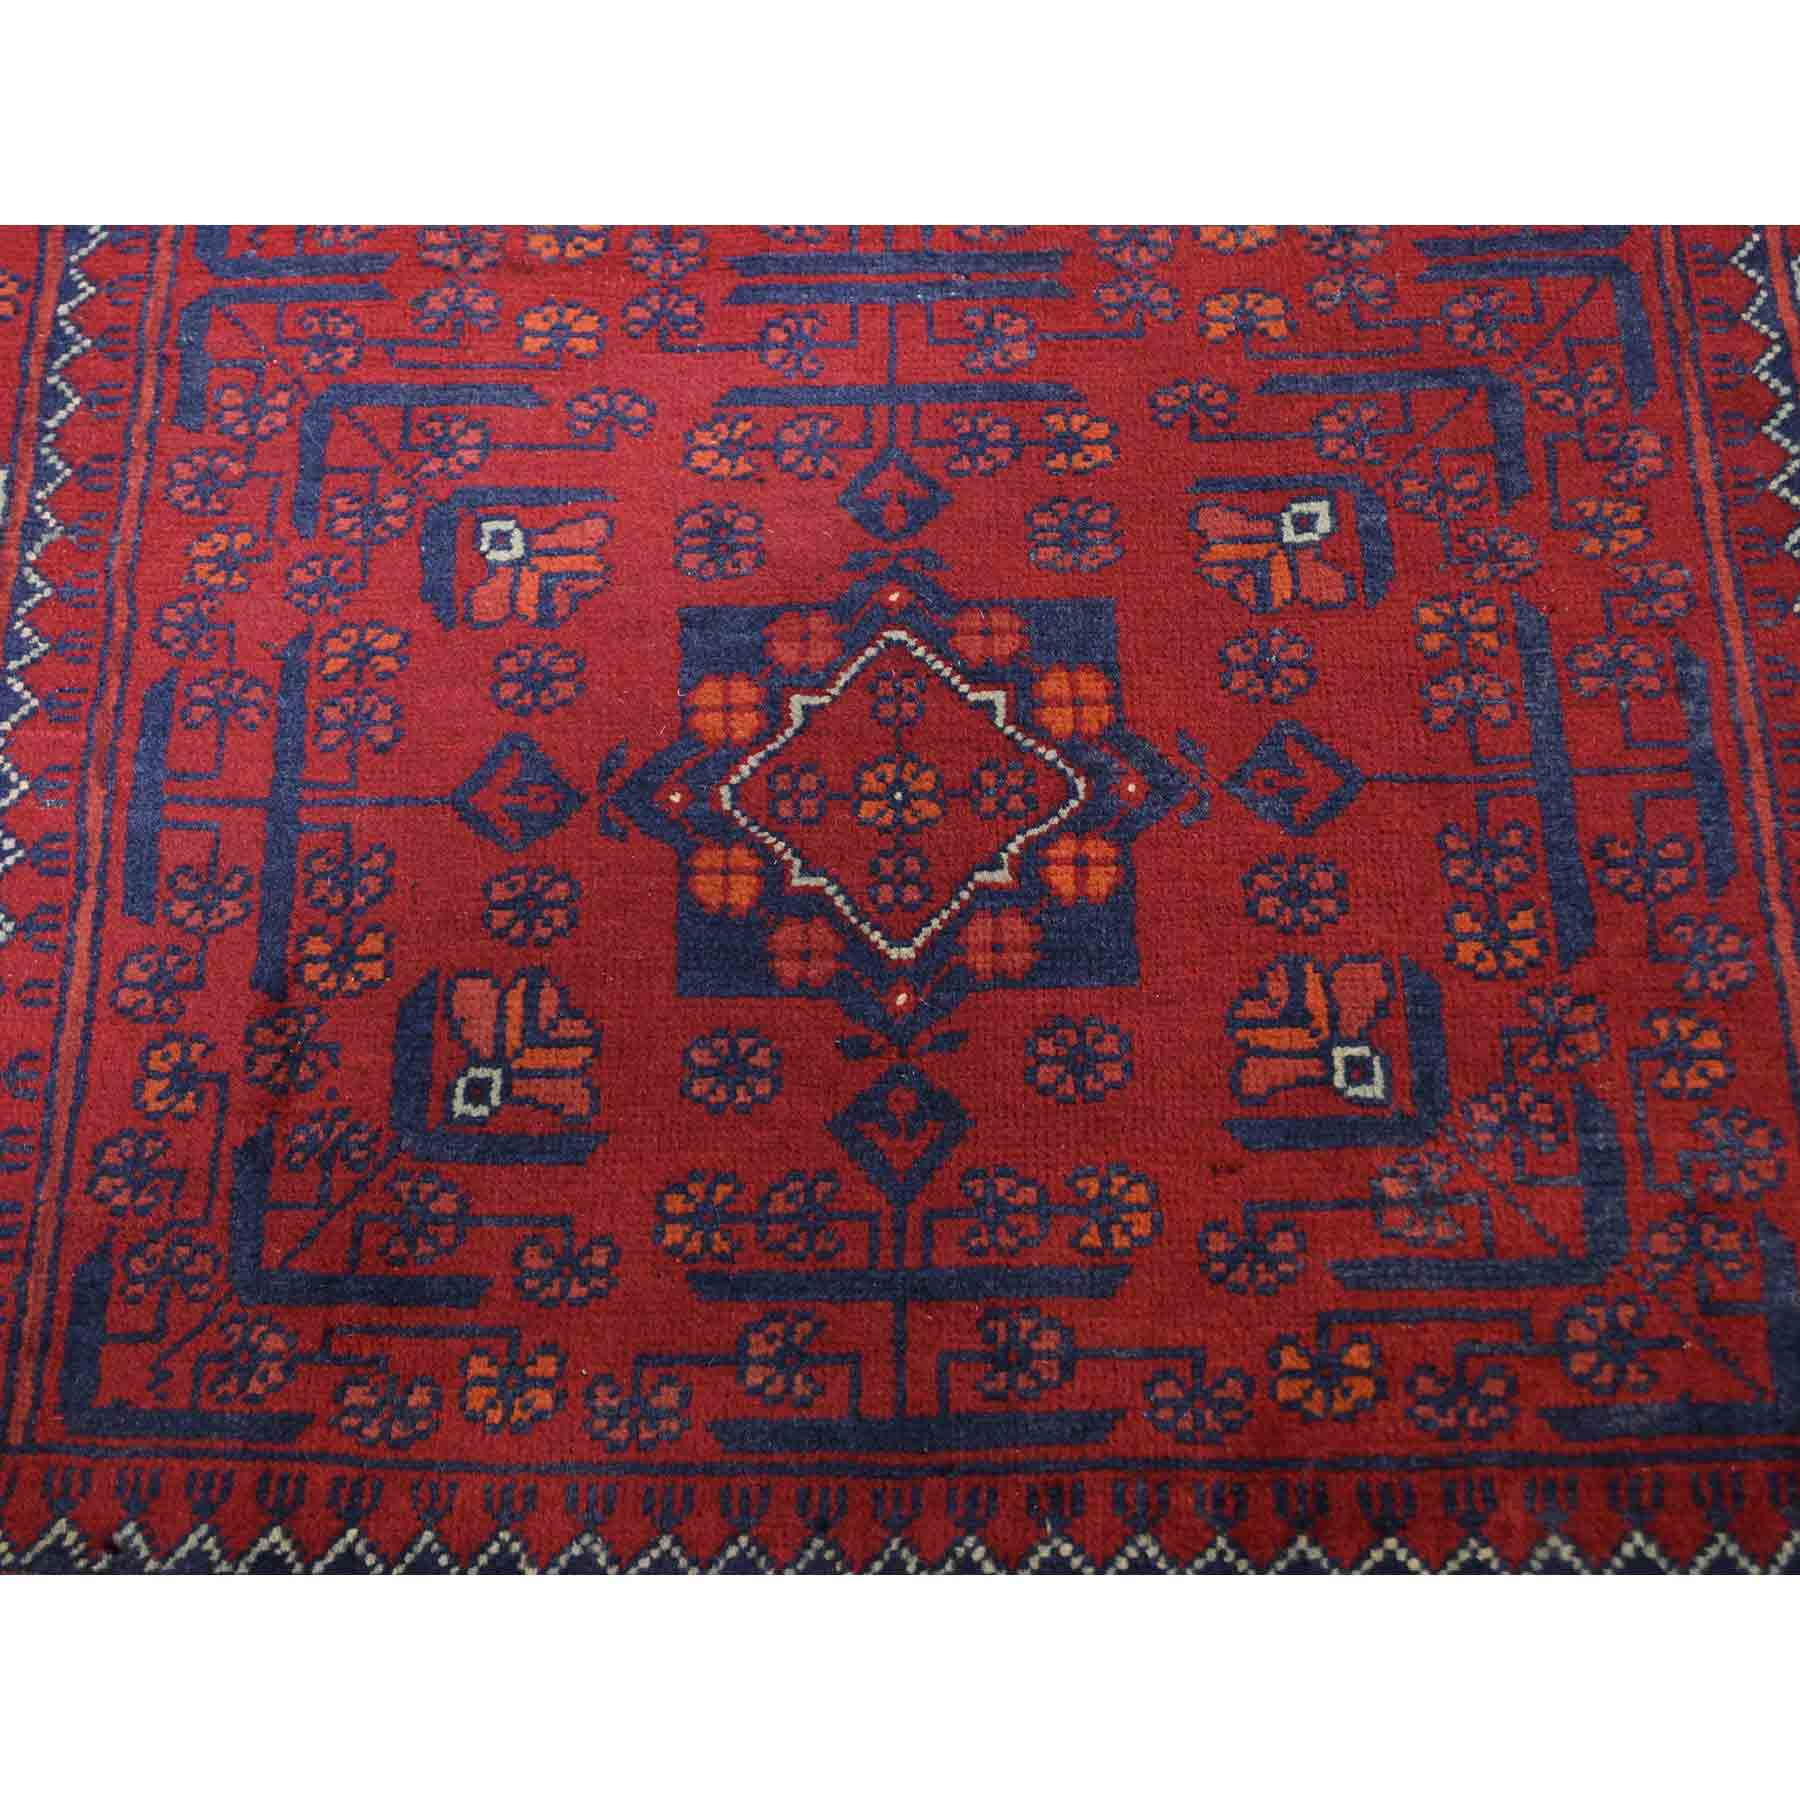 Tribal-Geometric-Hand-Knotted-Rug-224890